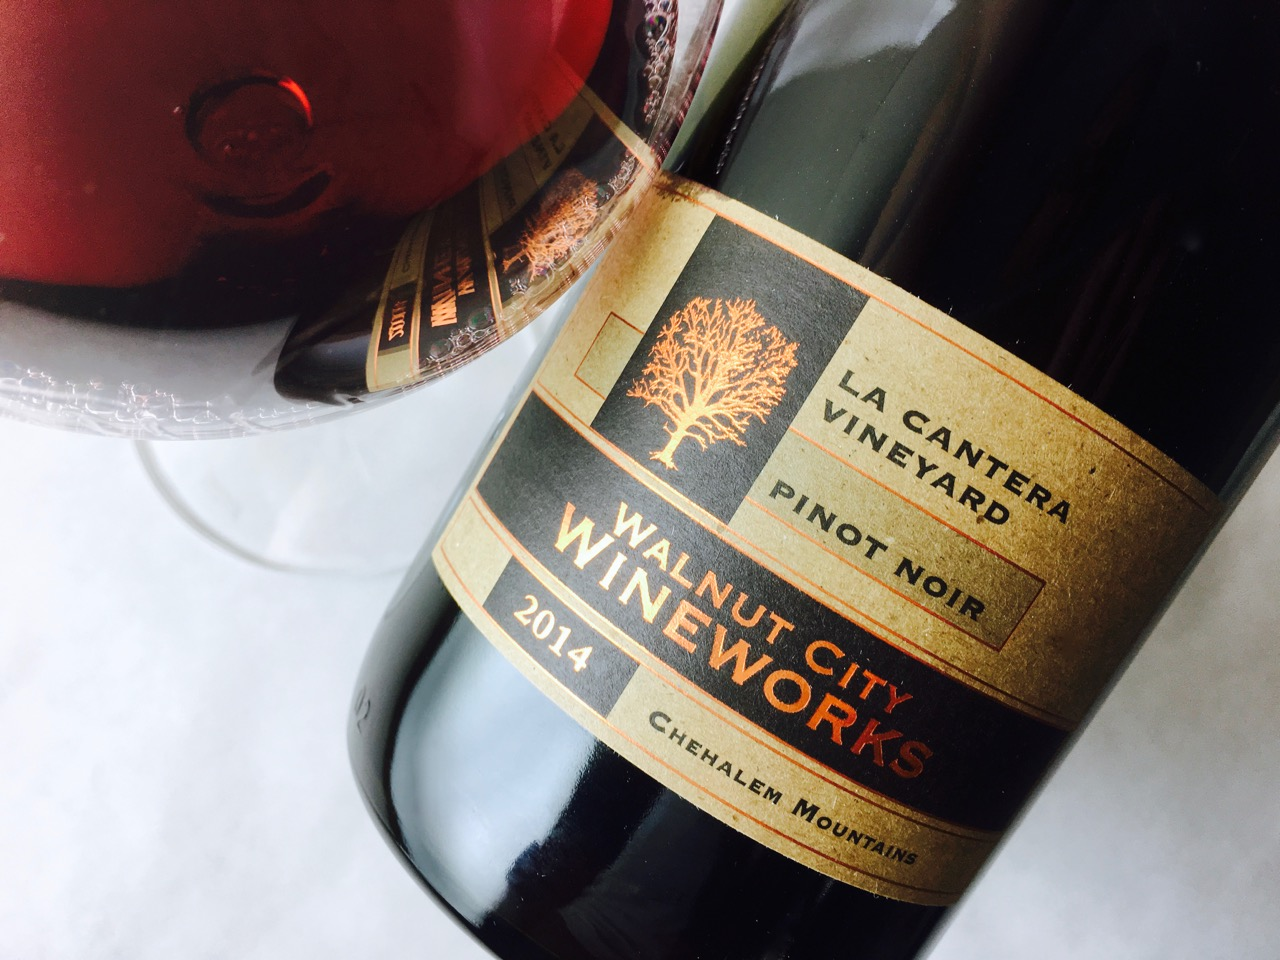 2014 Walnut City Pinot Noir La Cantera Vineyard Chehalem Mountains